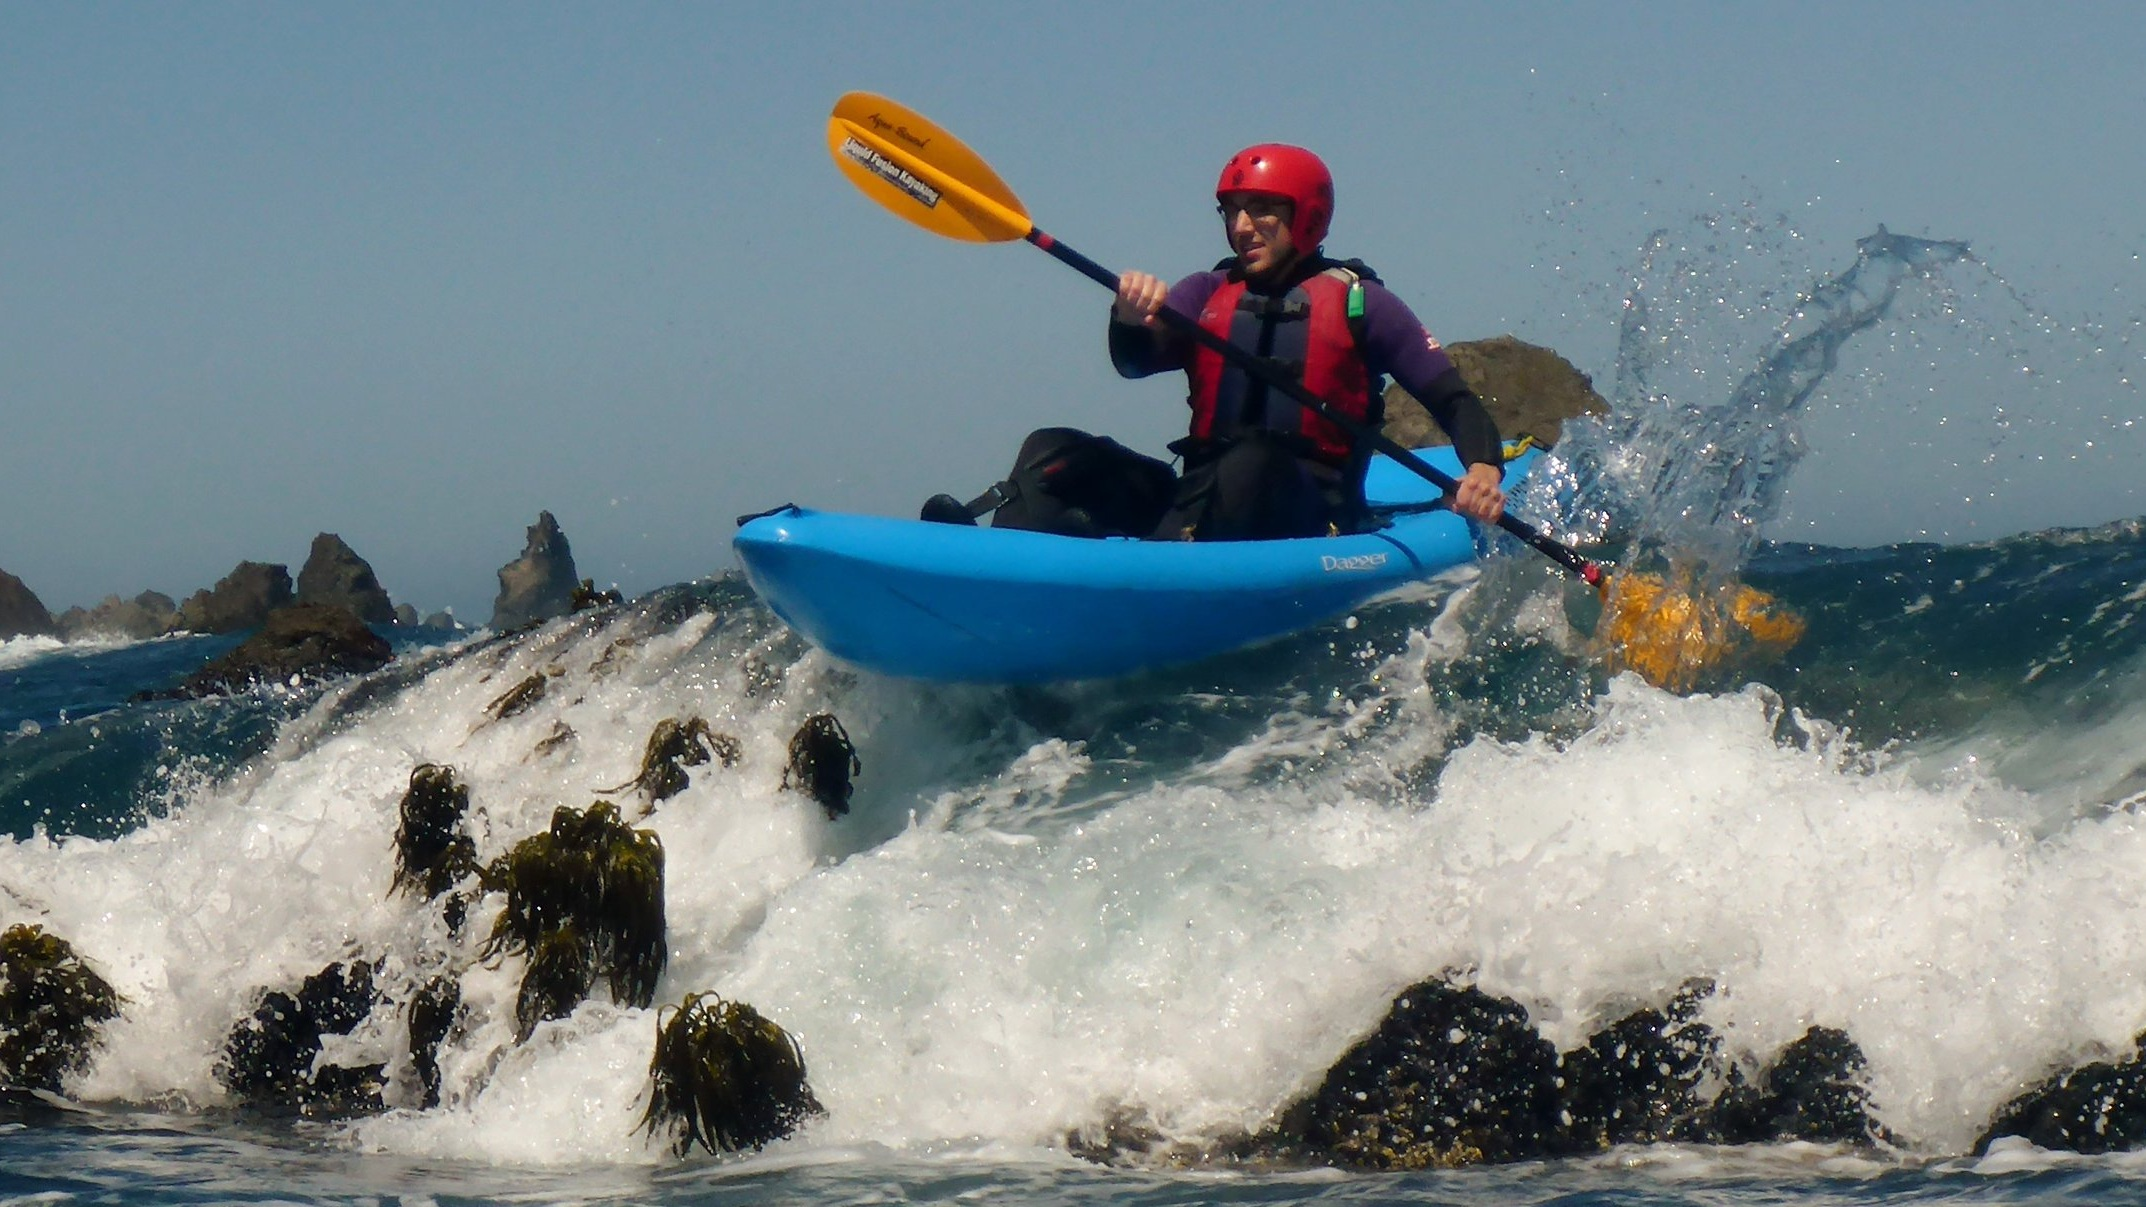 Whitewater of the Sea is a unique ocean kayaking adventure on the Mendocino Coast.